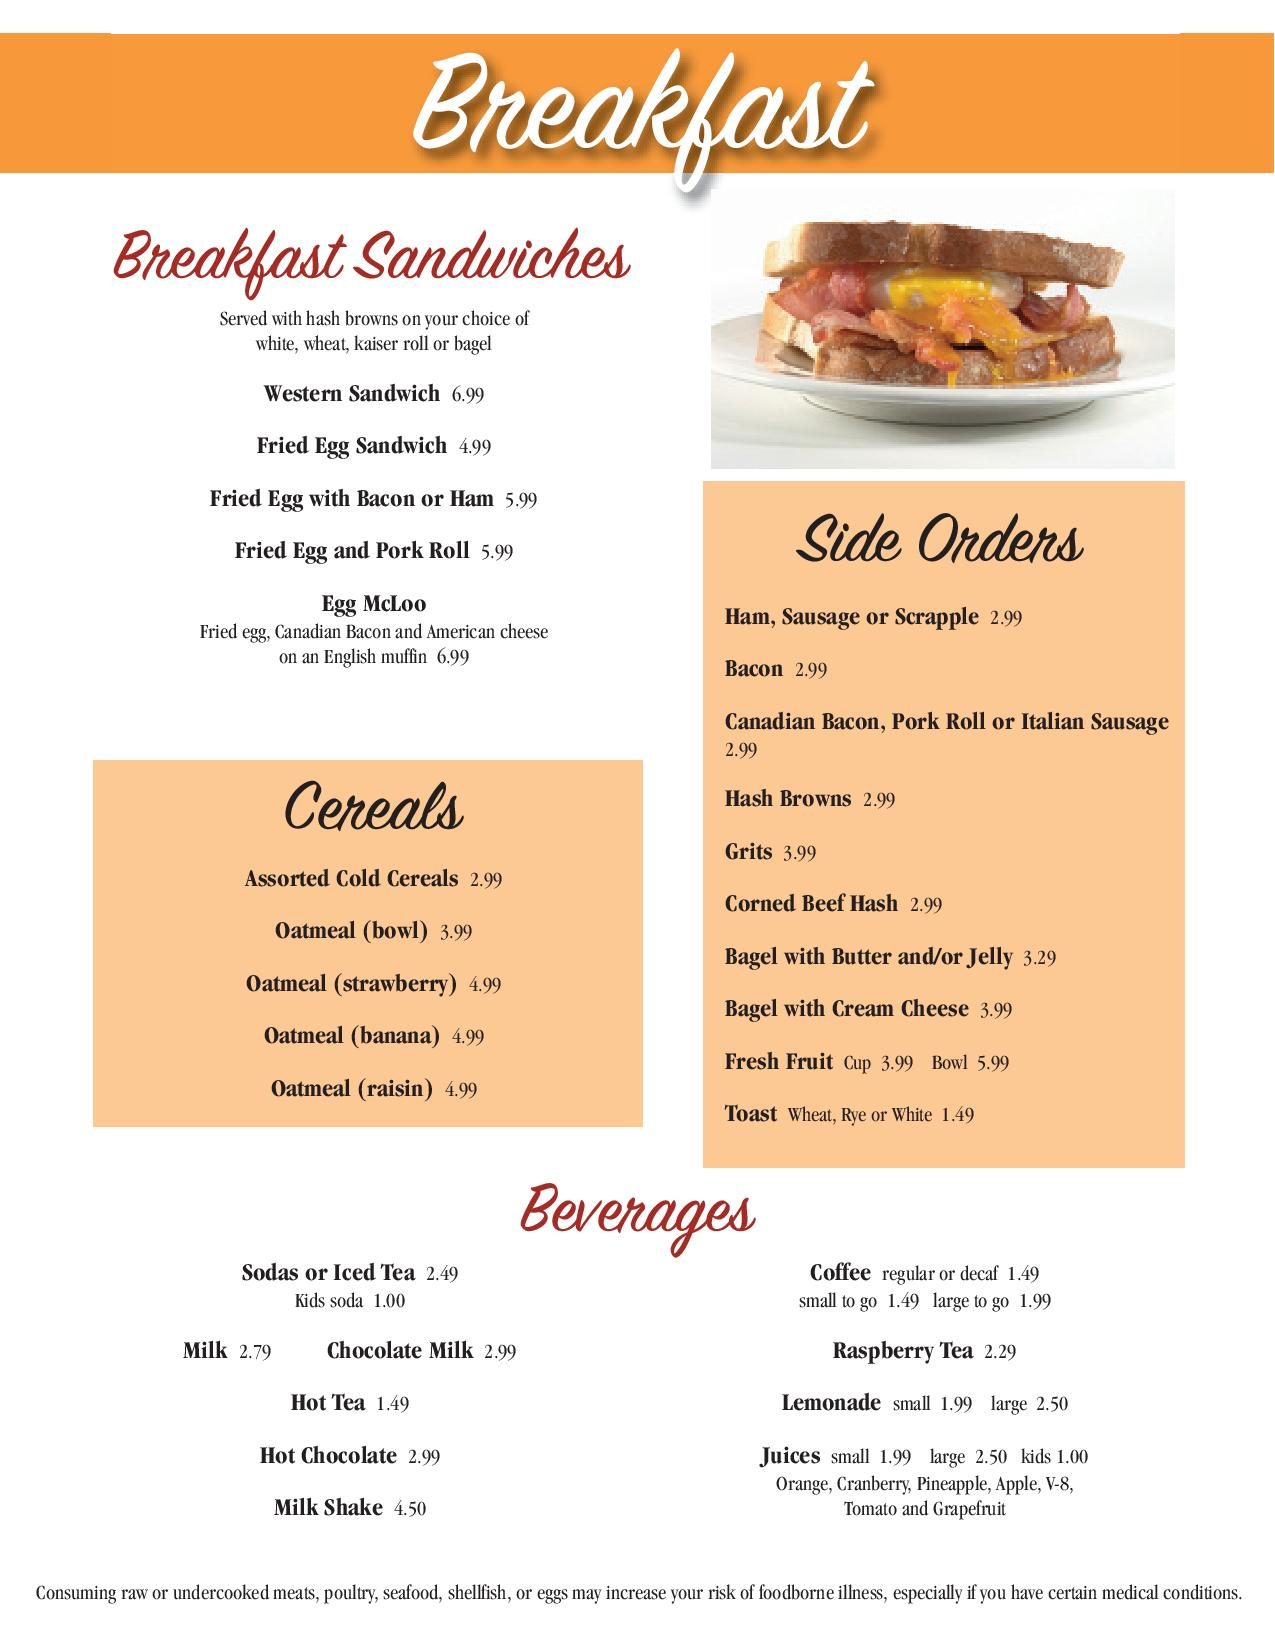 Enjoy Pancakes French Toast Omelettes Eggs Scrapple Sausage And Breakfast Sandwiches All At The Rehoboth Diner Fresh Delicious